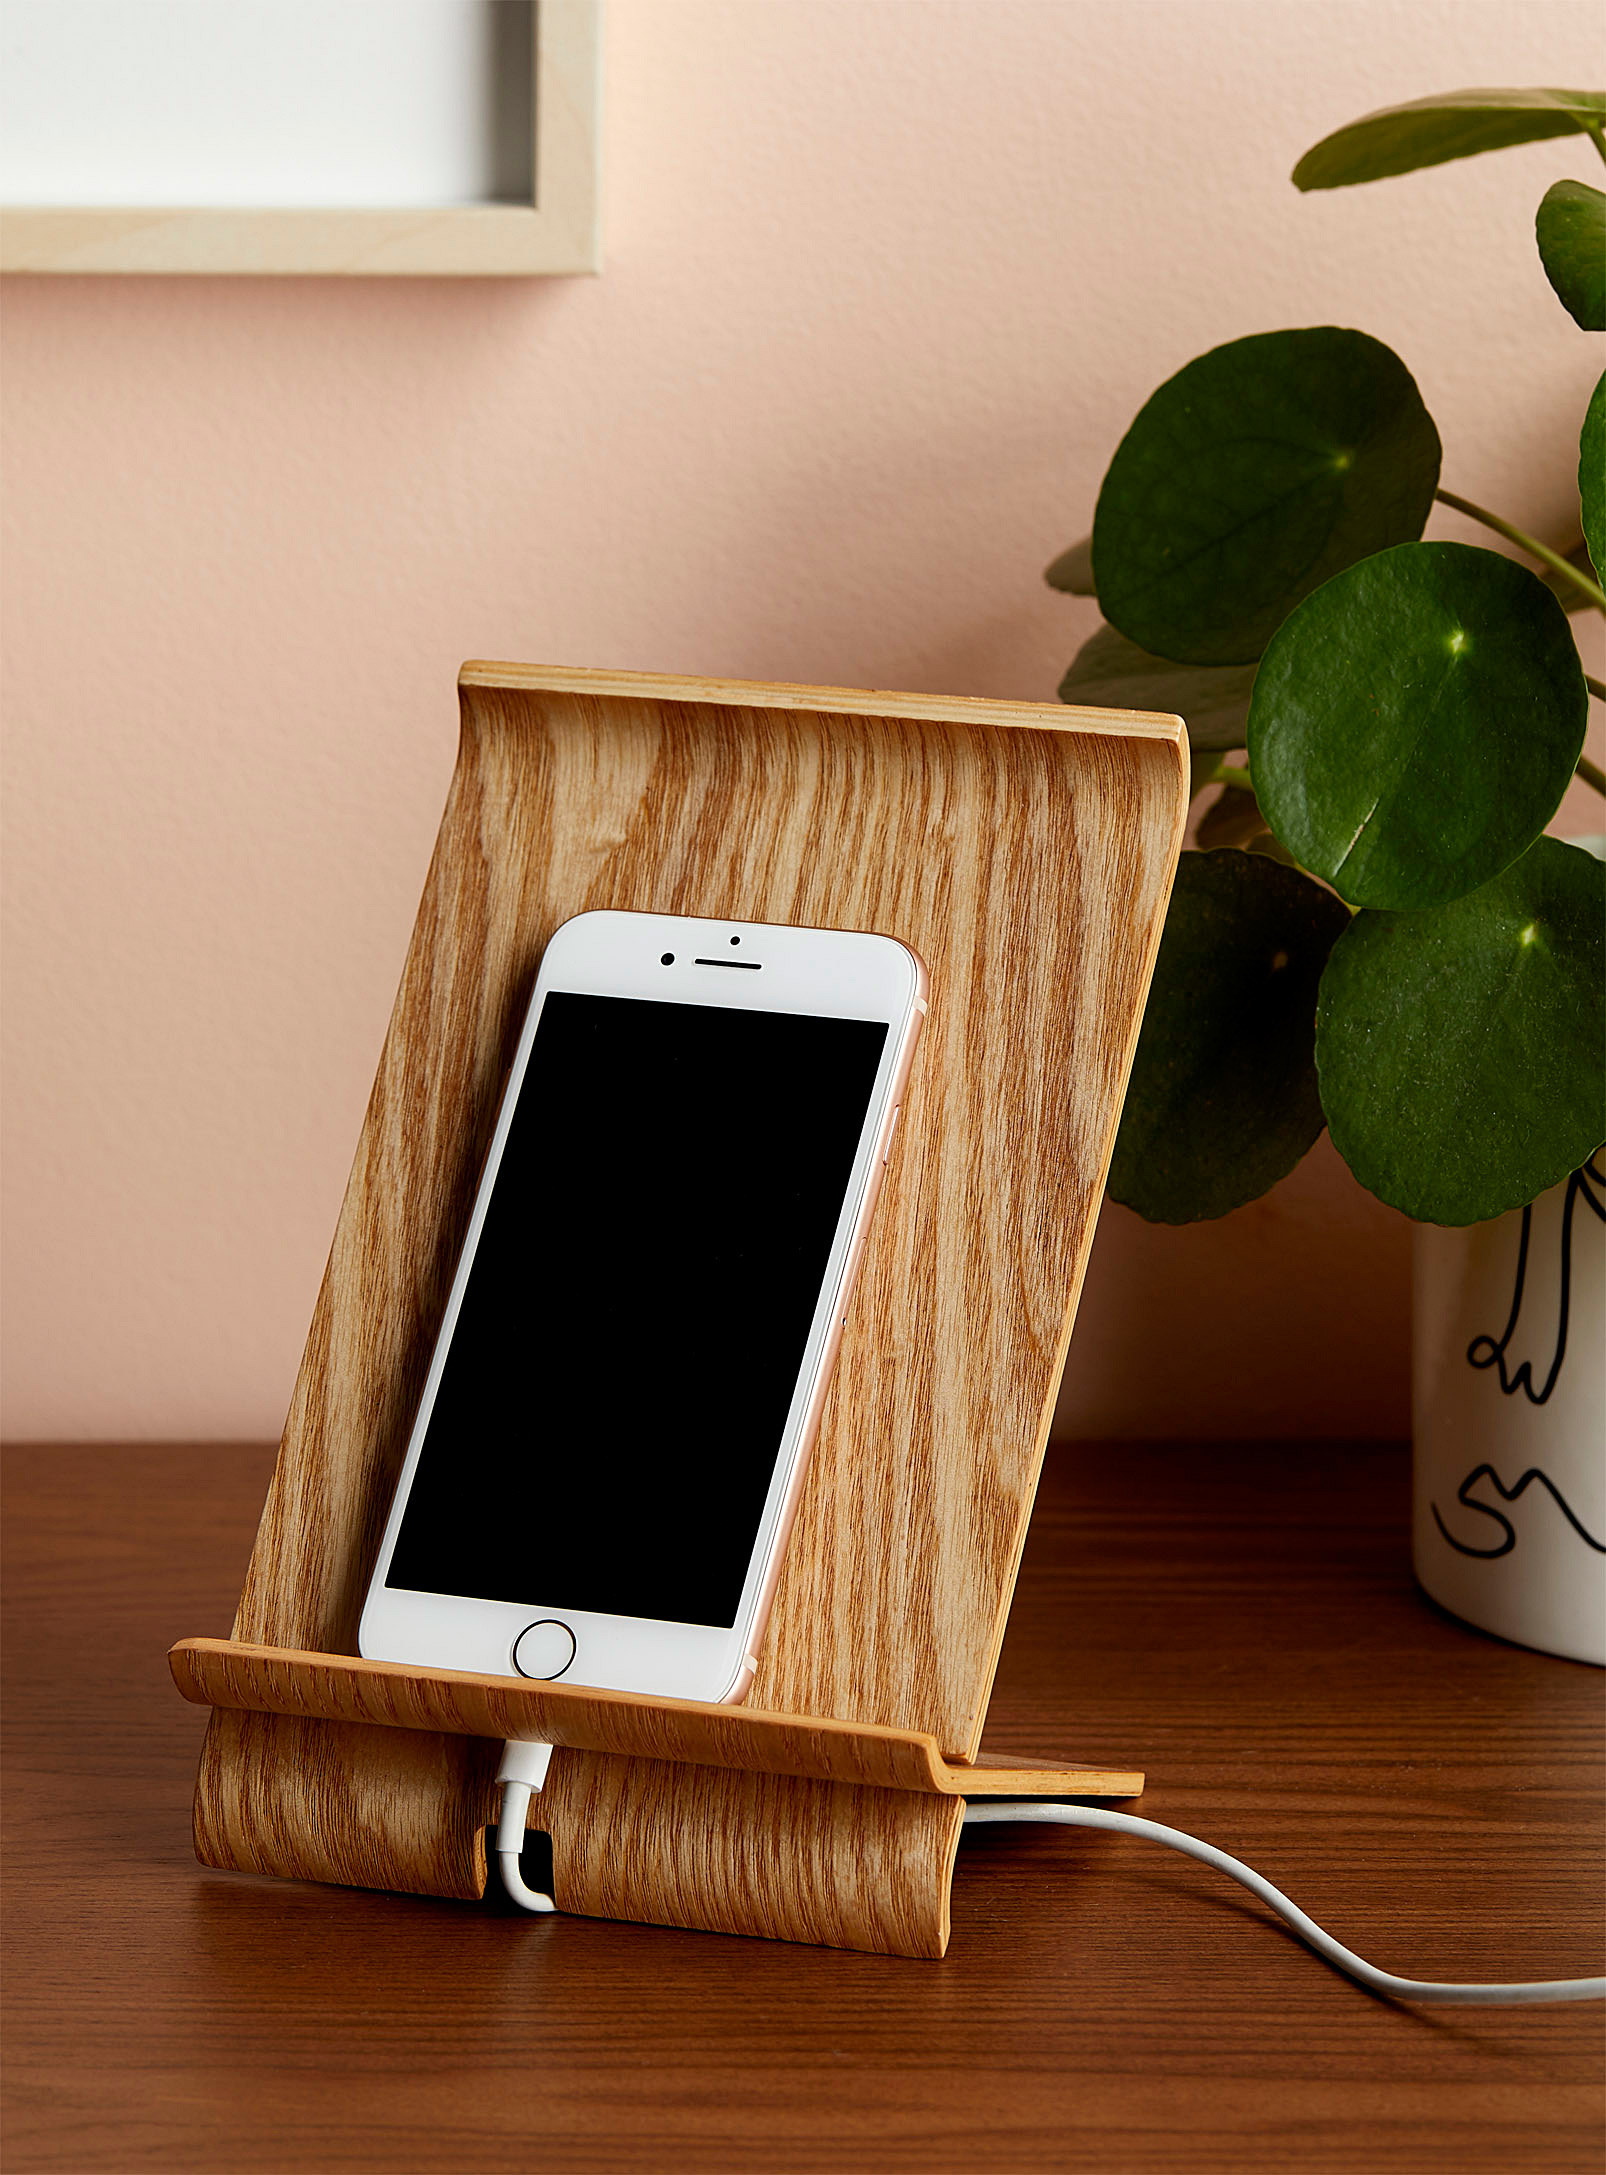 An iPhone on the wooden stand